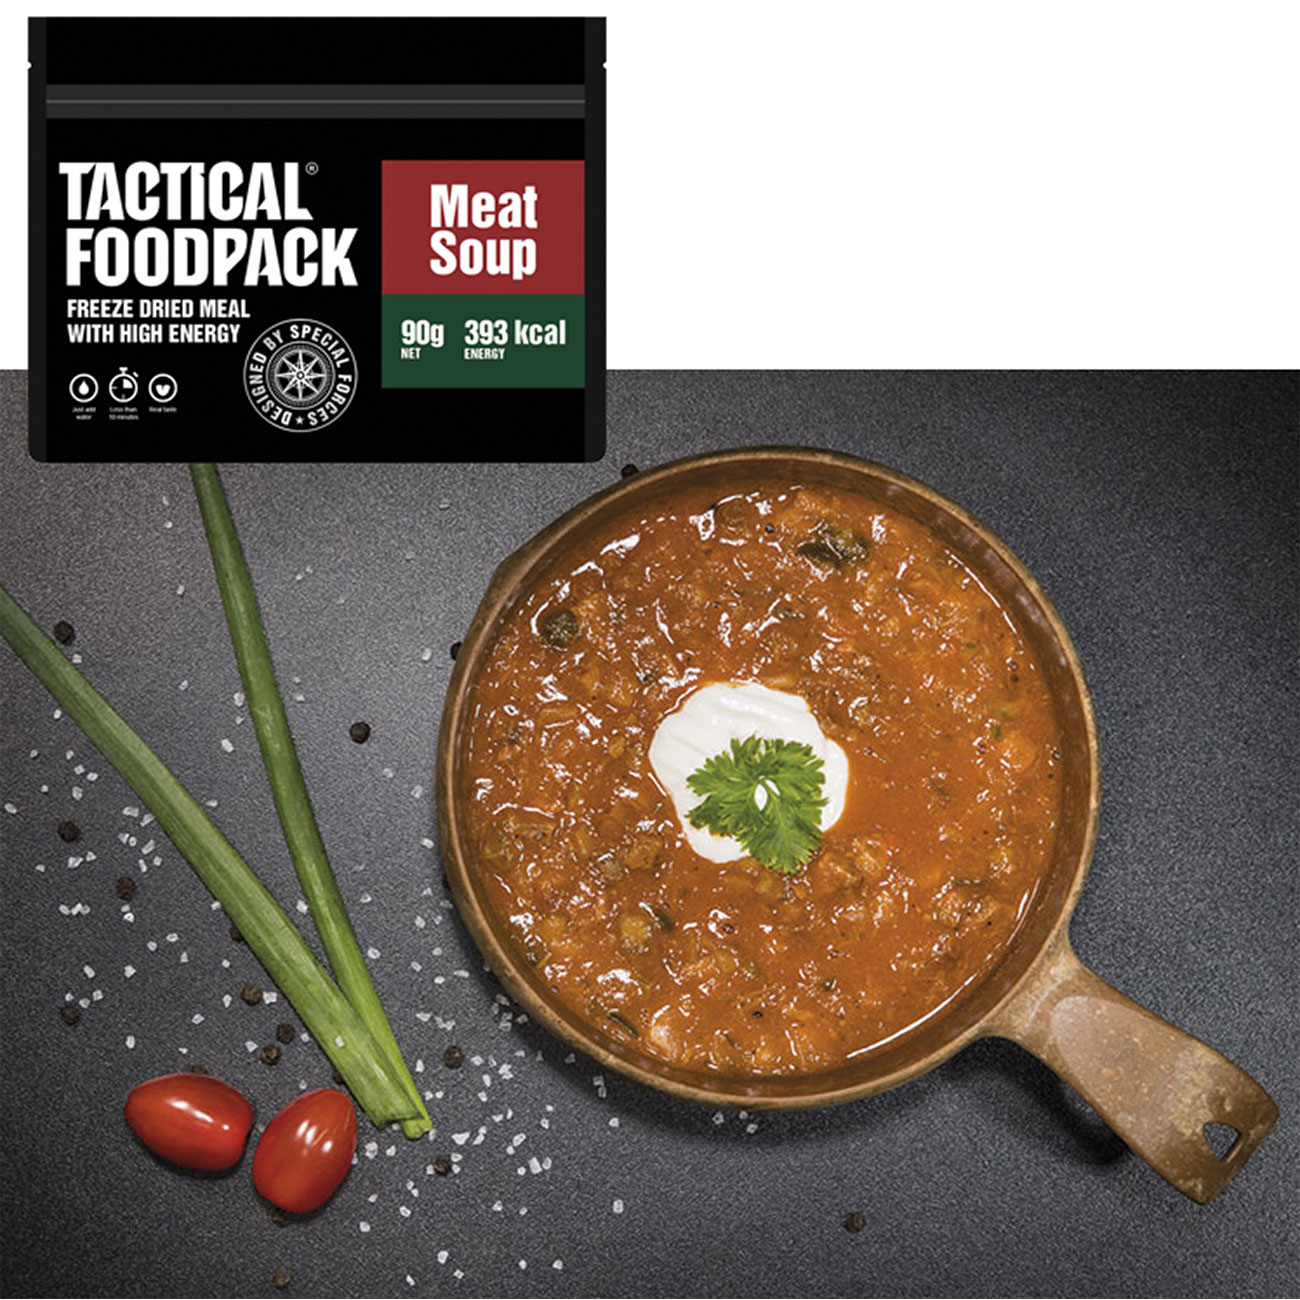 Tactical Foodpack Outdoor Mahlzeit Fleischsuppe 0